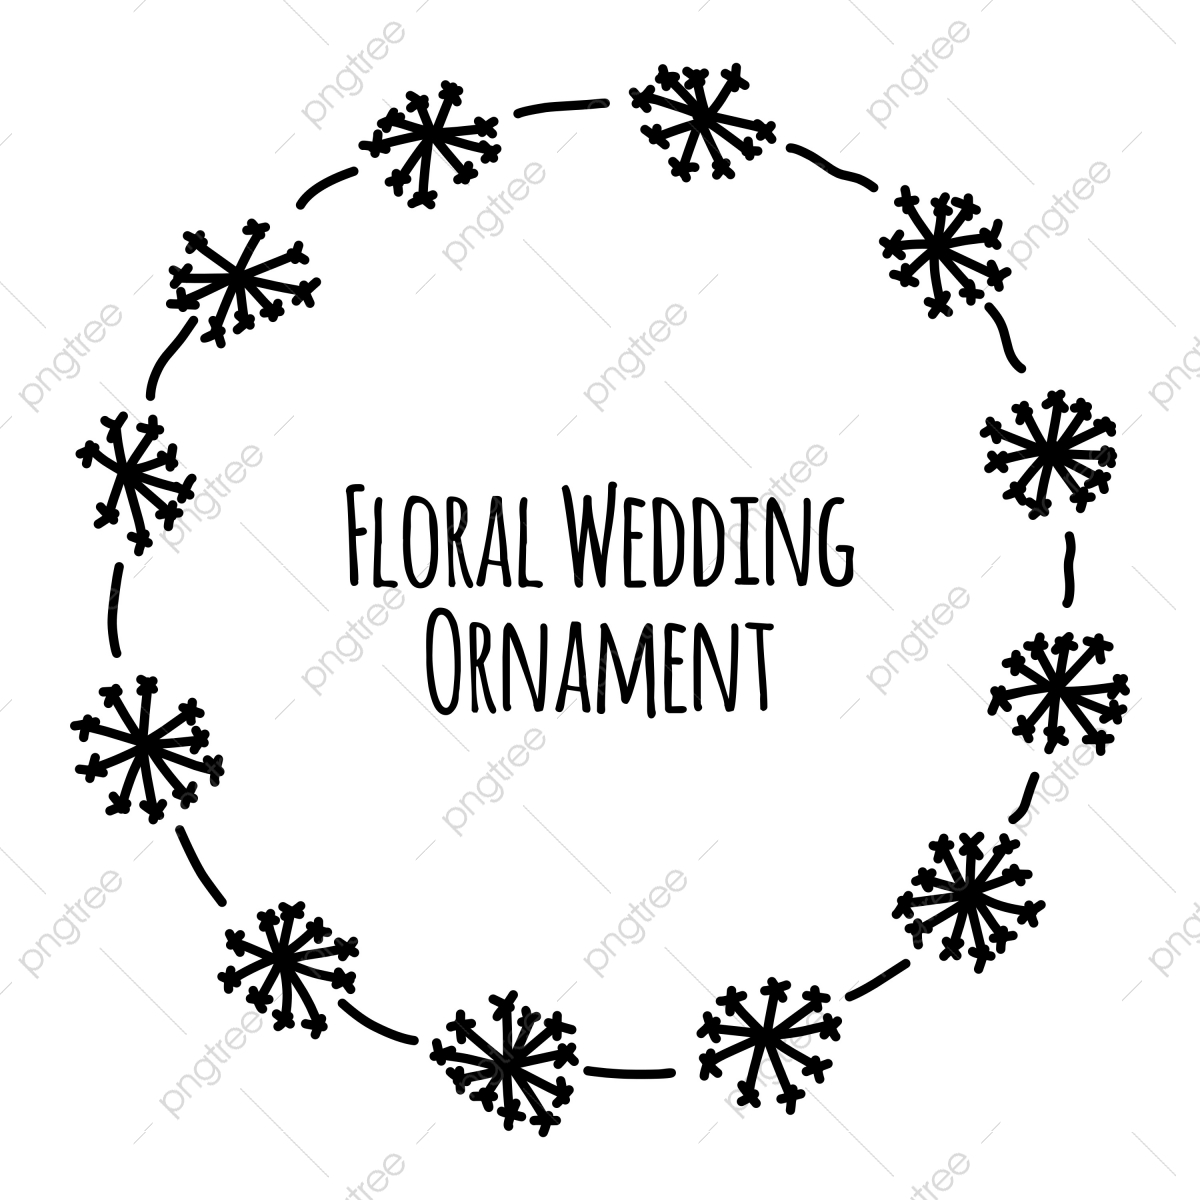 ornamen antik doodle floral undangan pernikahan elemen vektor ilustrasi gambar yg tak berarti bunga desain png dan vektor dengan latar belakang transparan untuk unduh gratis https id pngtree com freepng vintage ornament doodle floral wedding invitation element vector illustration 5044371 html